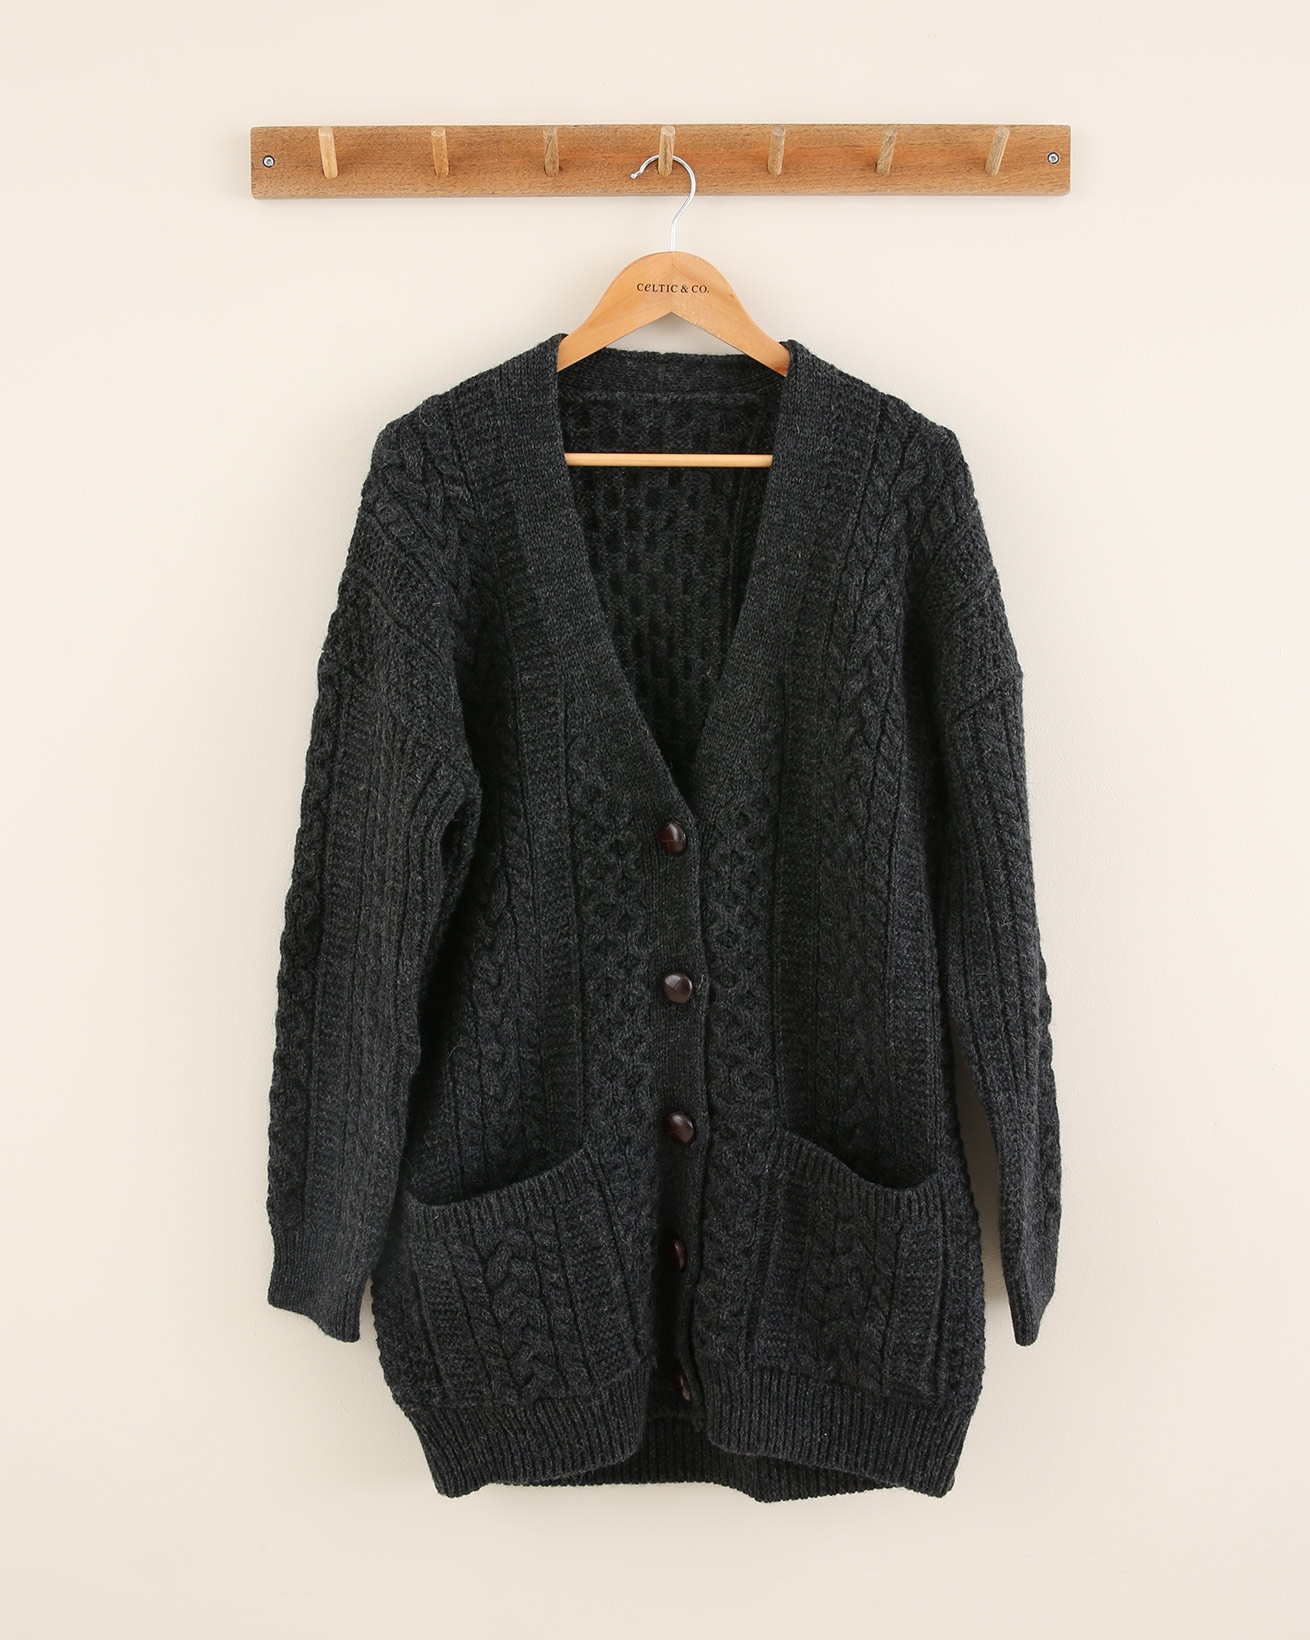 Boyfriend Cardi - Size Small - Charcoal Cable - 1697